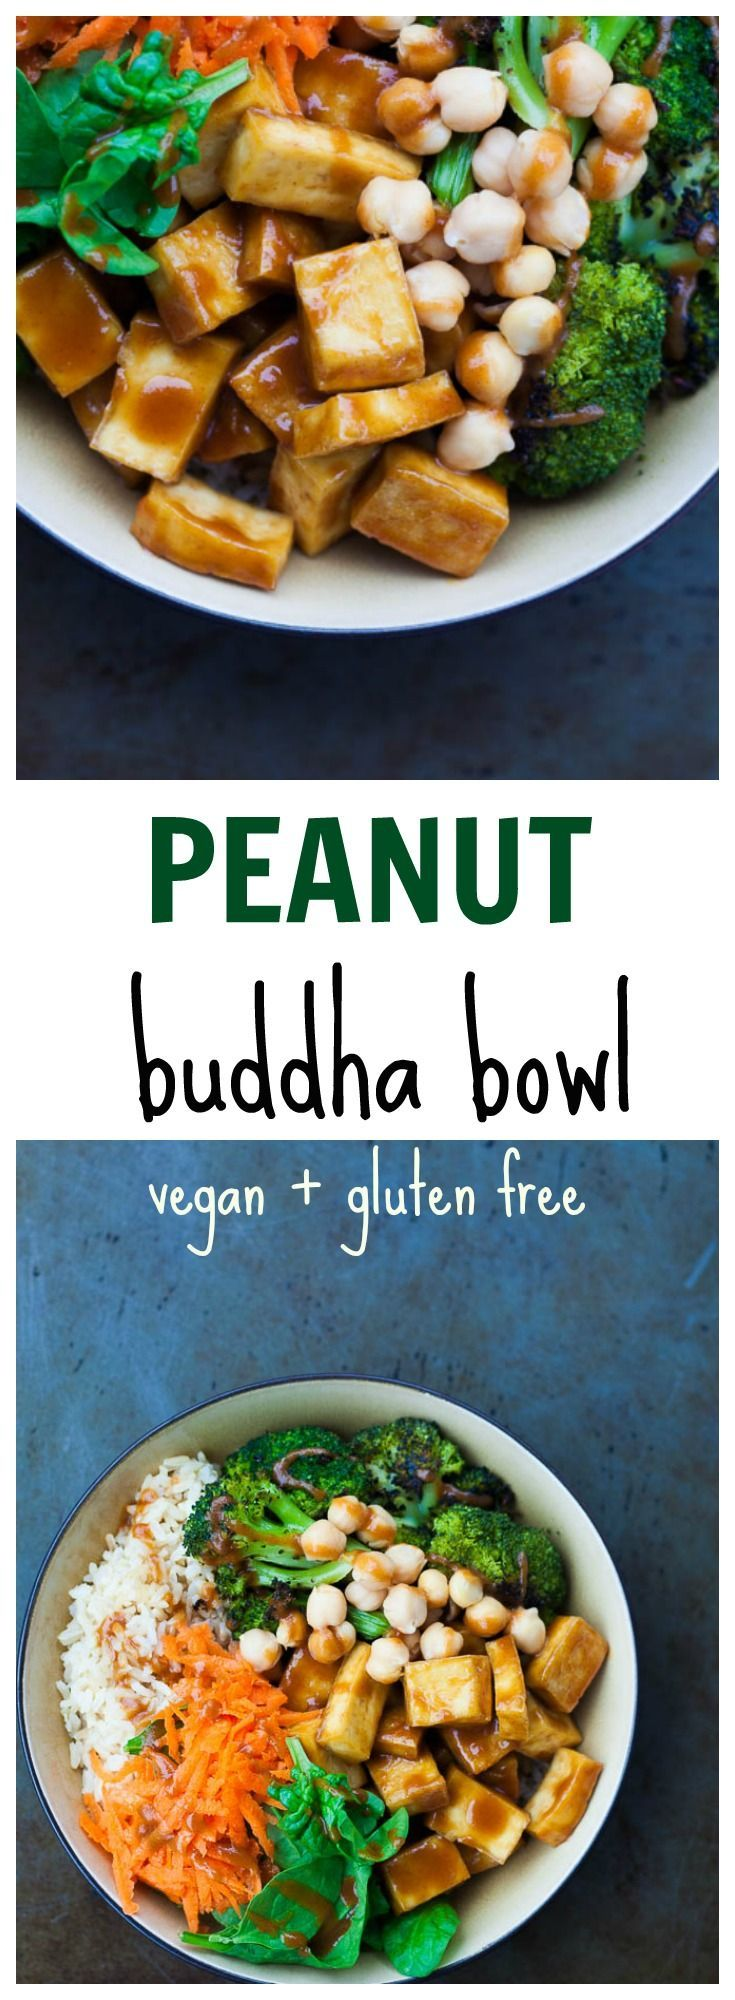 Peanut Buddha Bowl with perfectly crispy, chewy no fry tofu and simple roasted broccoli.